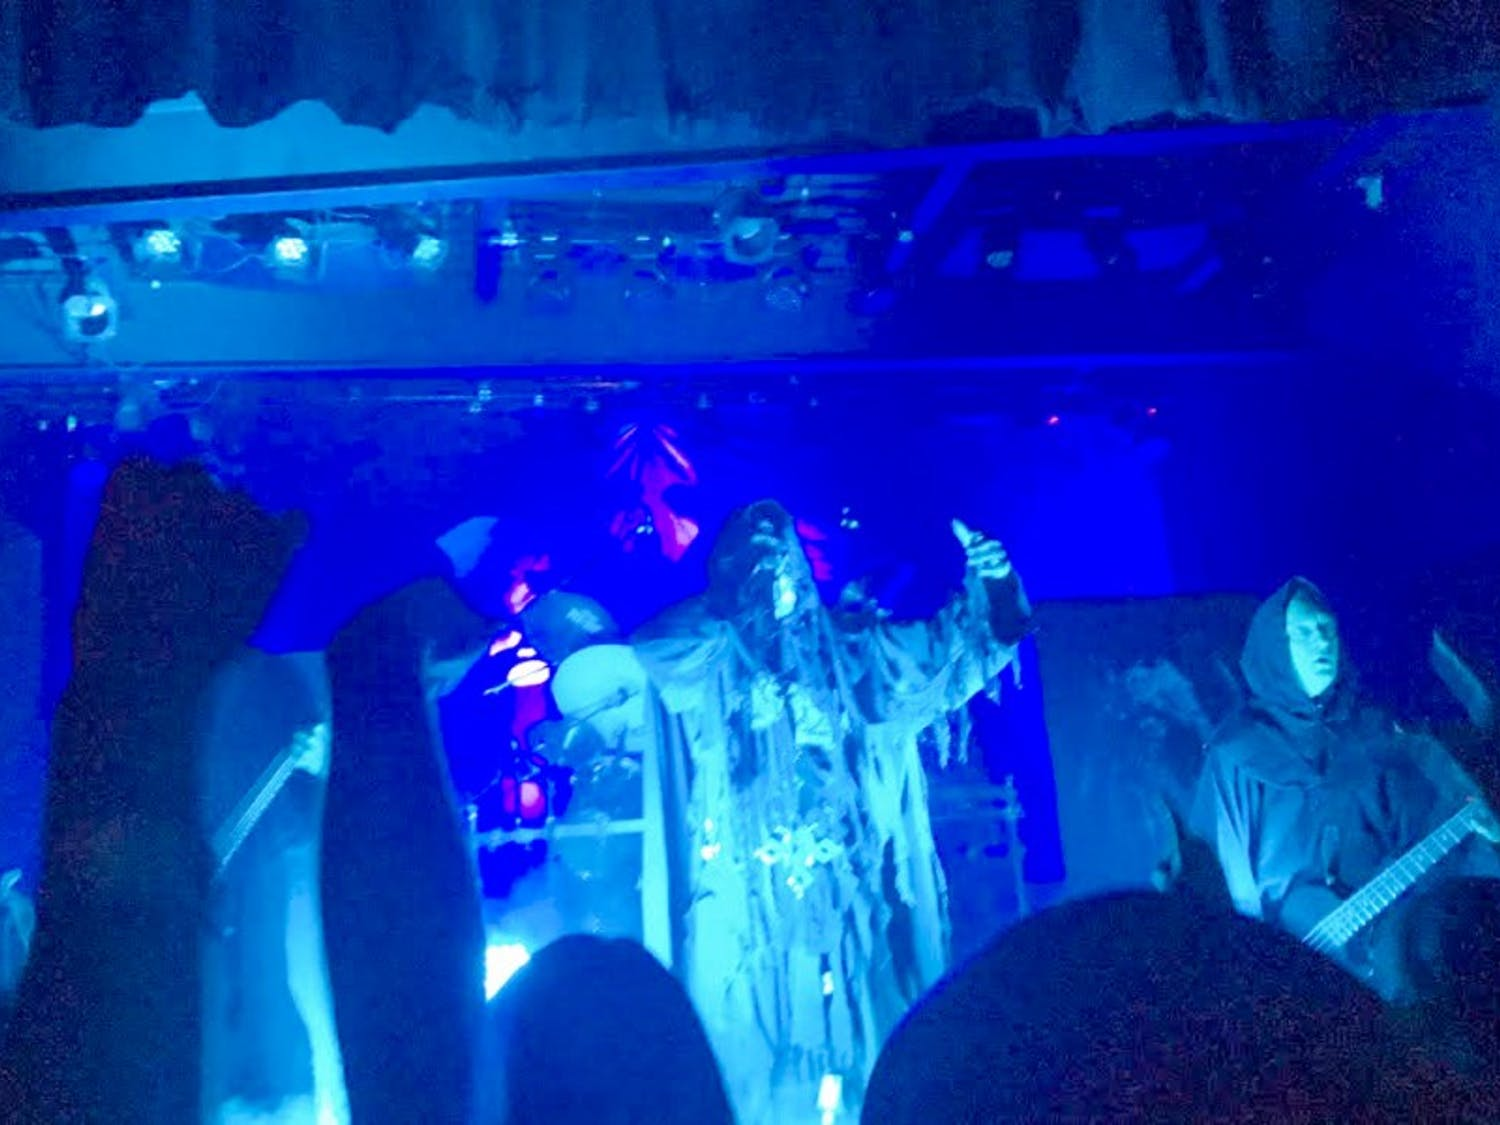 Mayhem gave a theatrical performance at Majestic on Tuesday, complete with Satanic costumes and props.